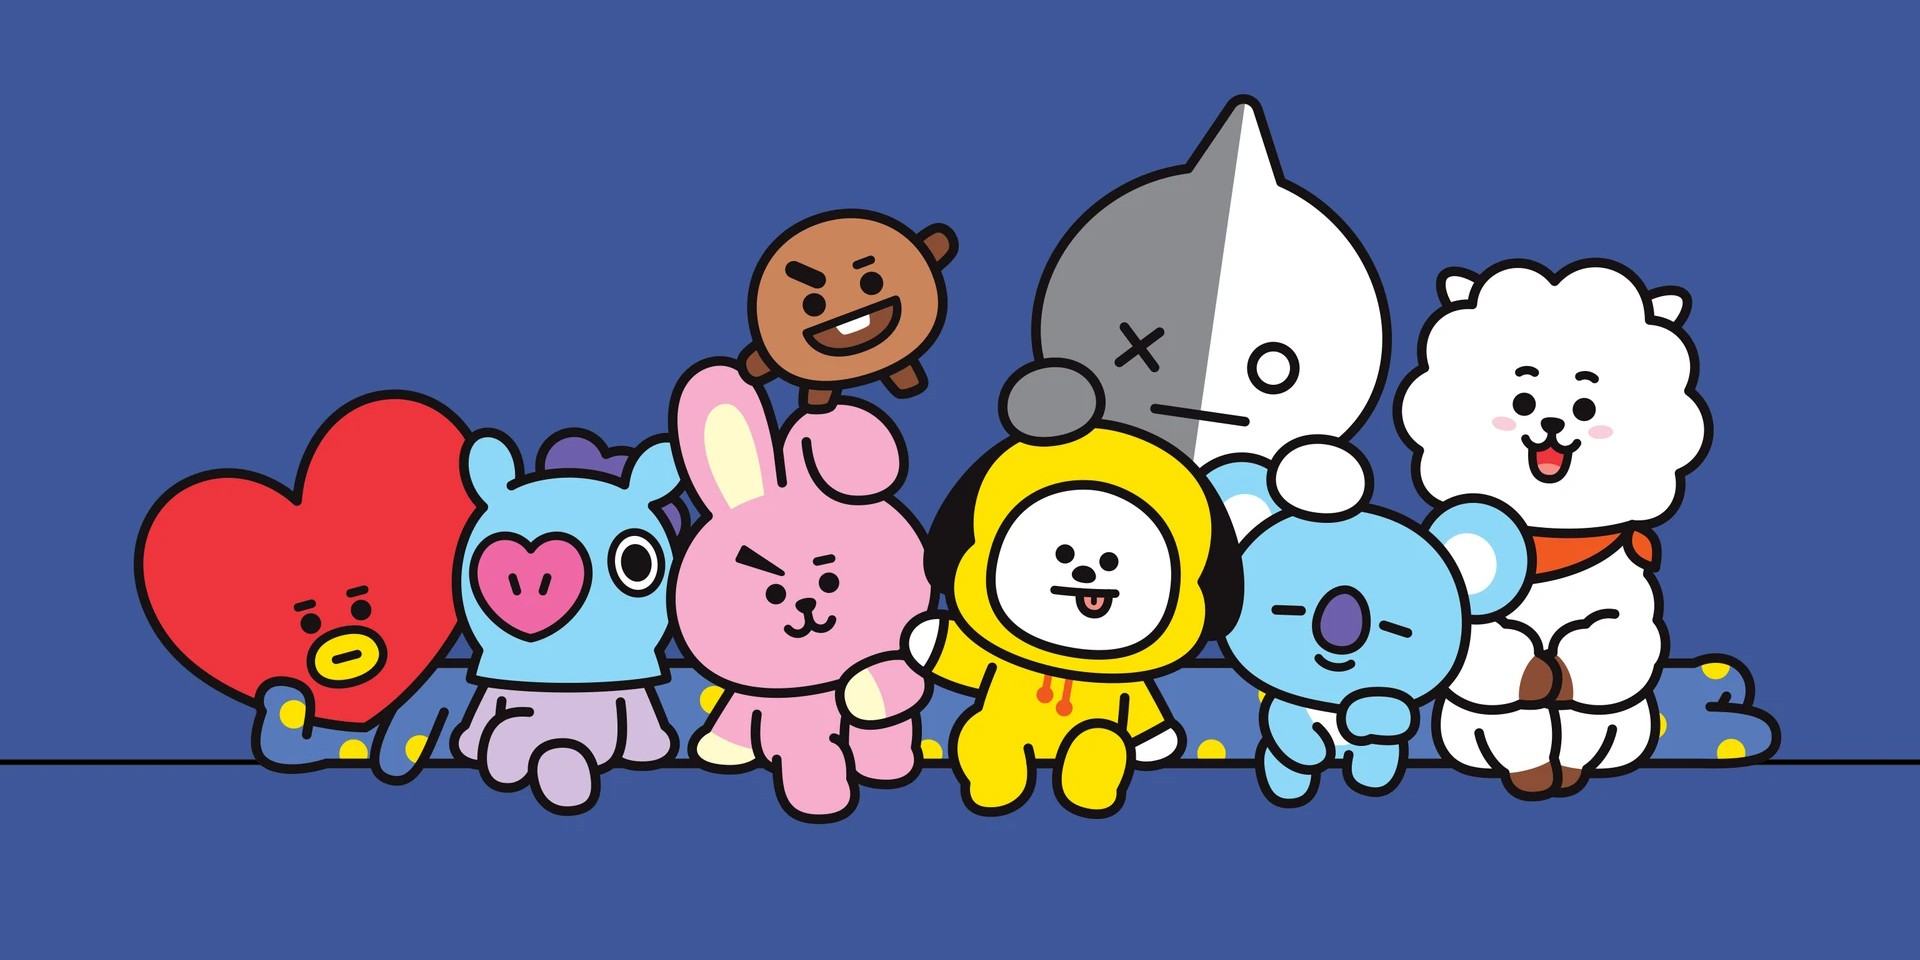 LINE FRIENDS to release BT21 Tamagotchi later this year